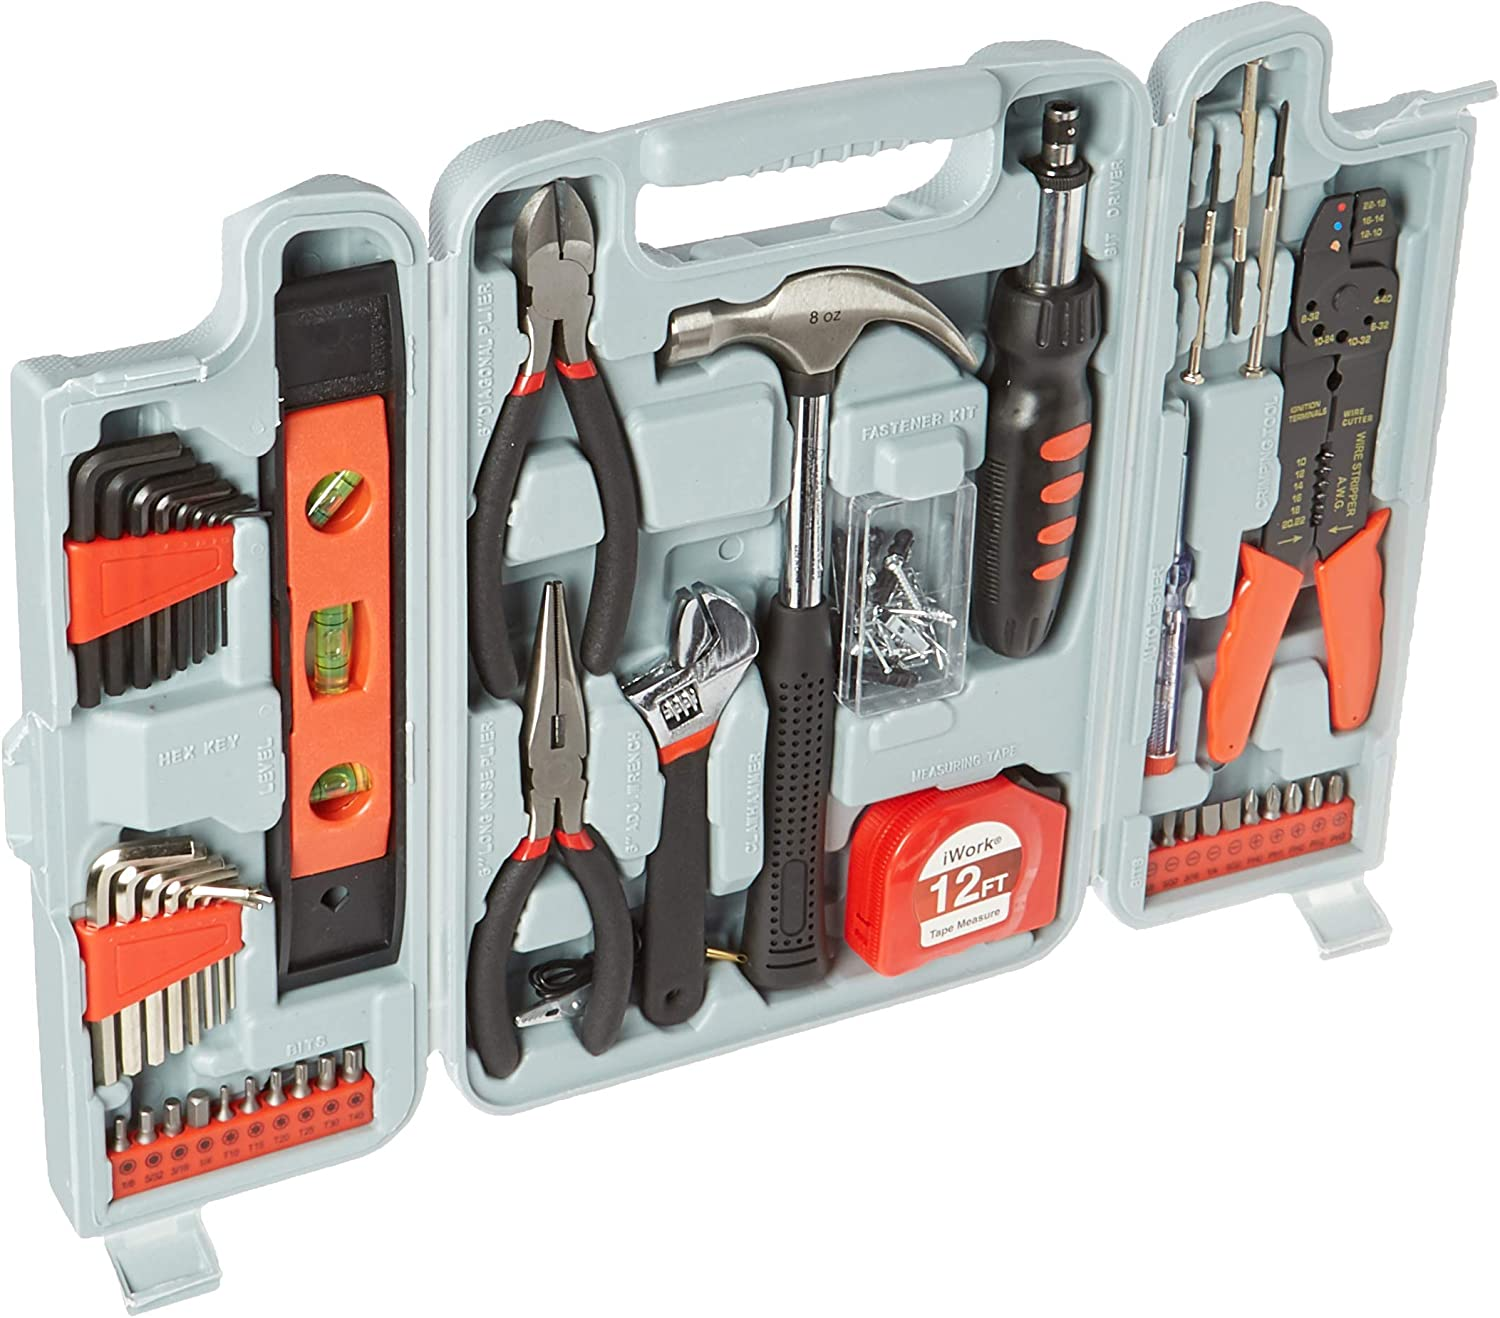 Latest DIY Coil Building Repair Tool Kit Coil Jig//Tweezers//NEWEST Tool Kit 9PCS Home DIY Tool Set Great Gift to Husband Friend and Father